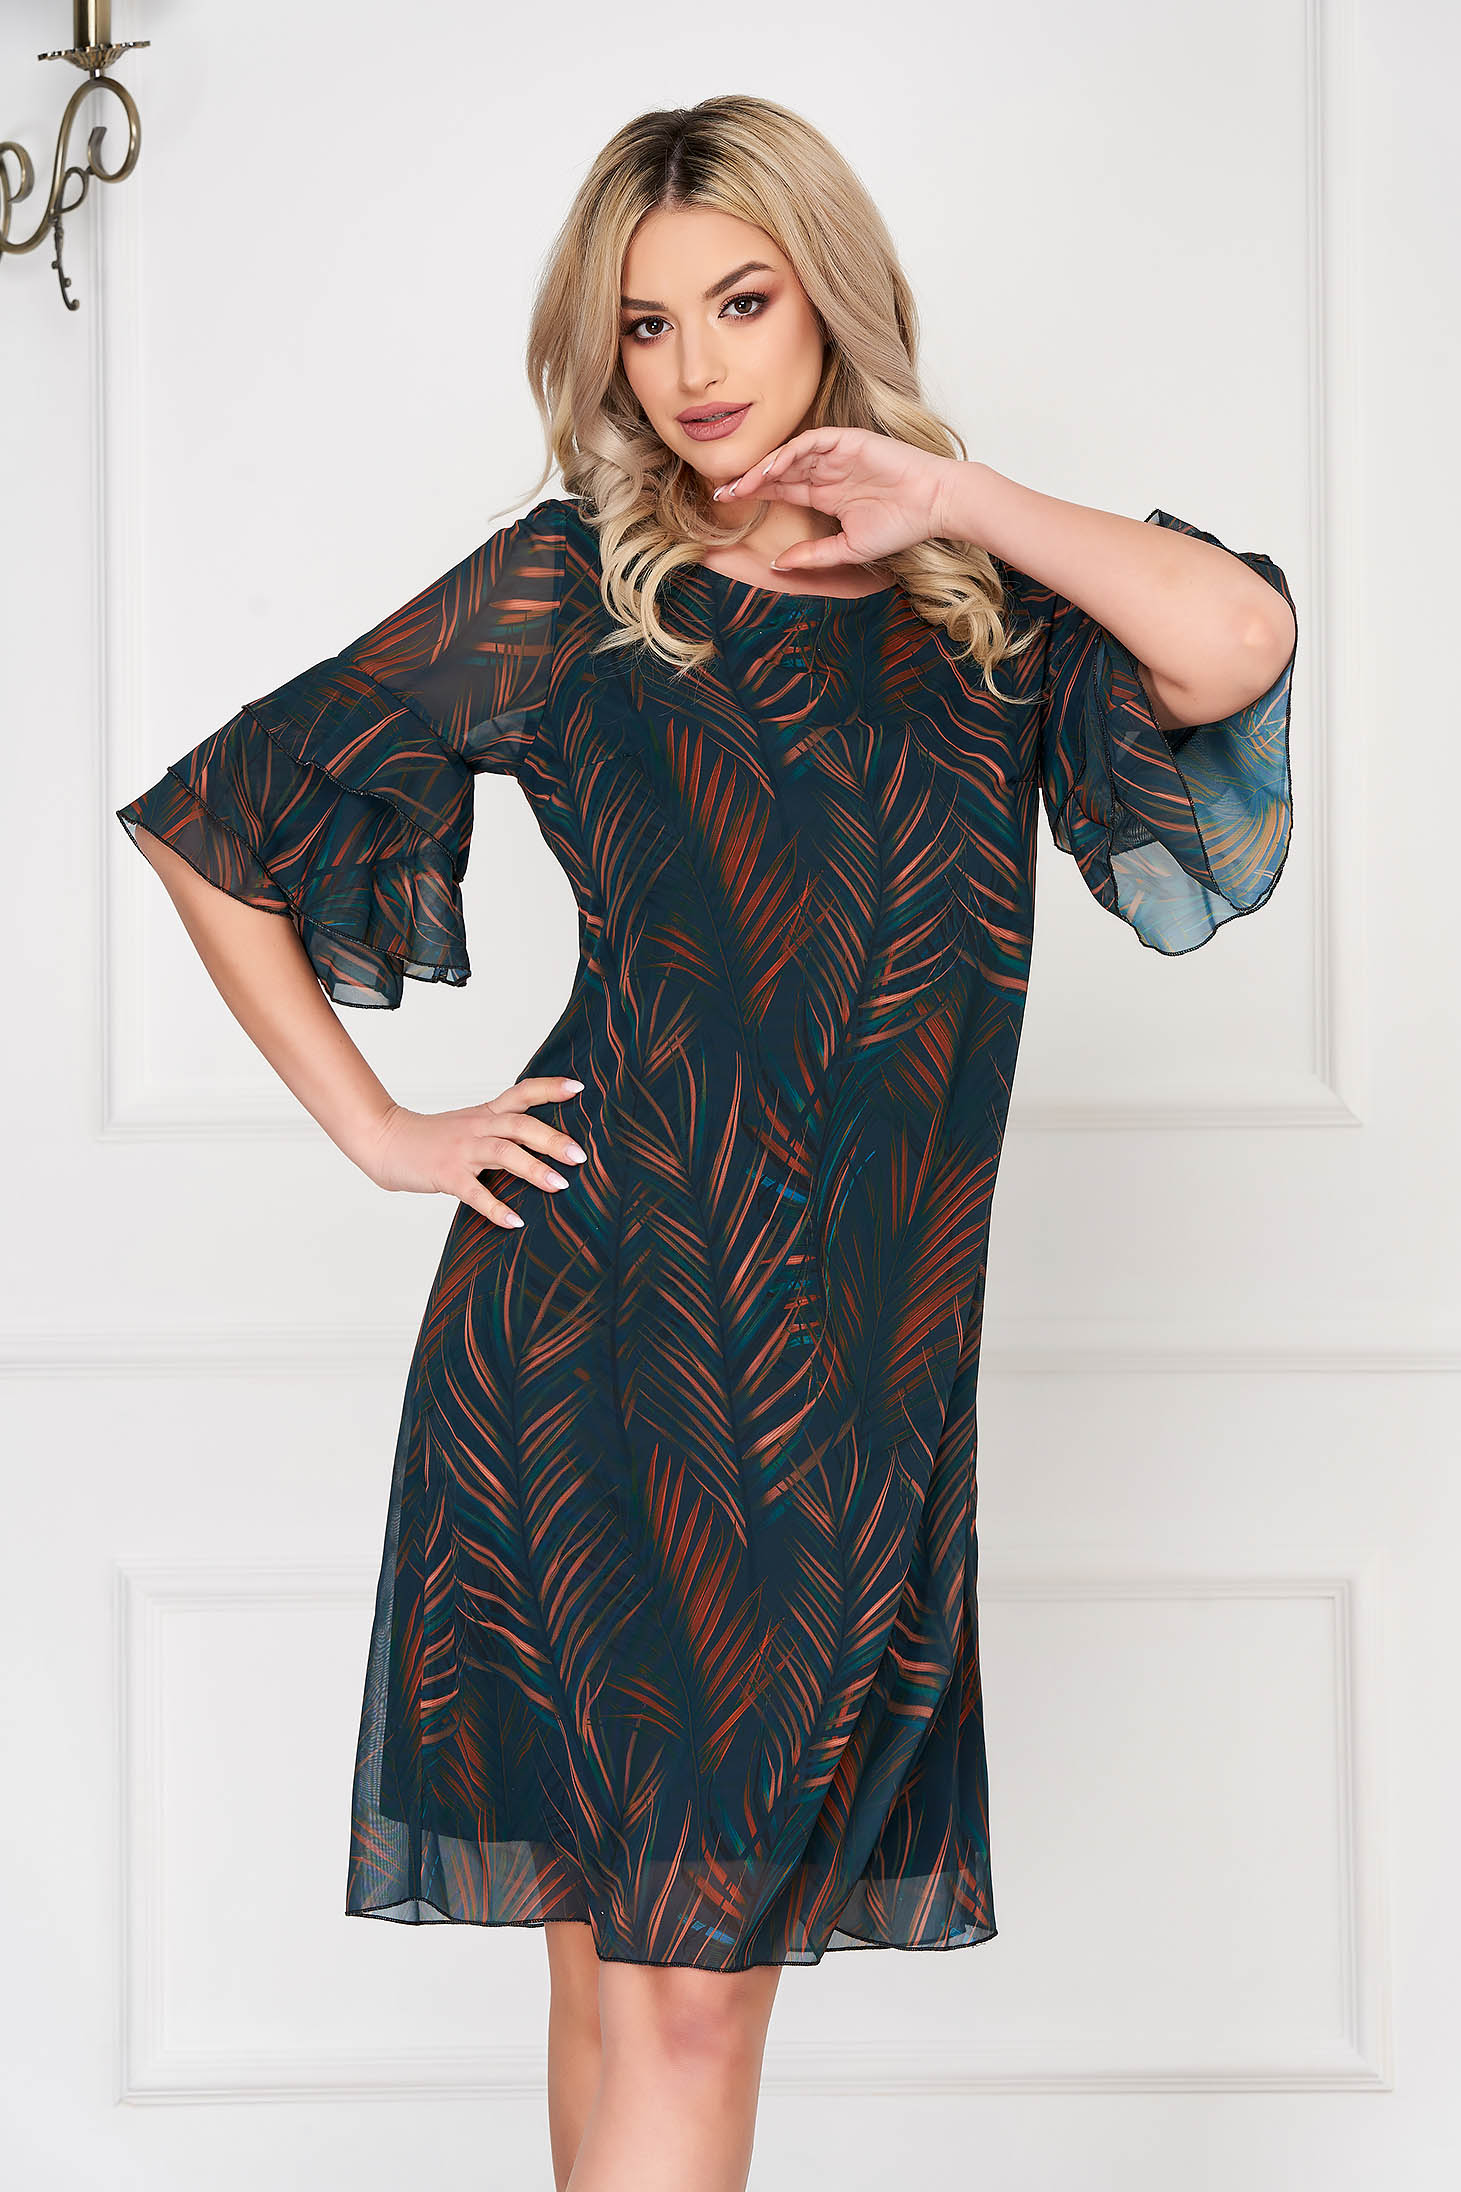 Darkgreen dress daily short cut a-line bell sleeves with graphic details neckline